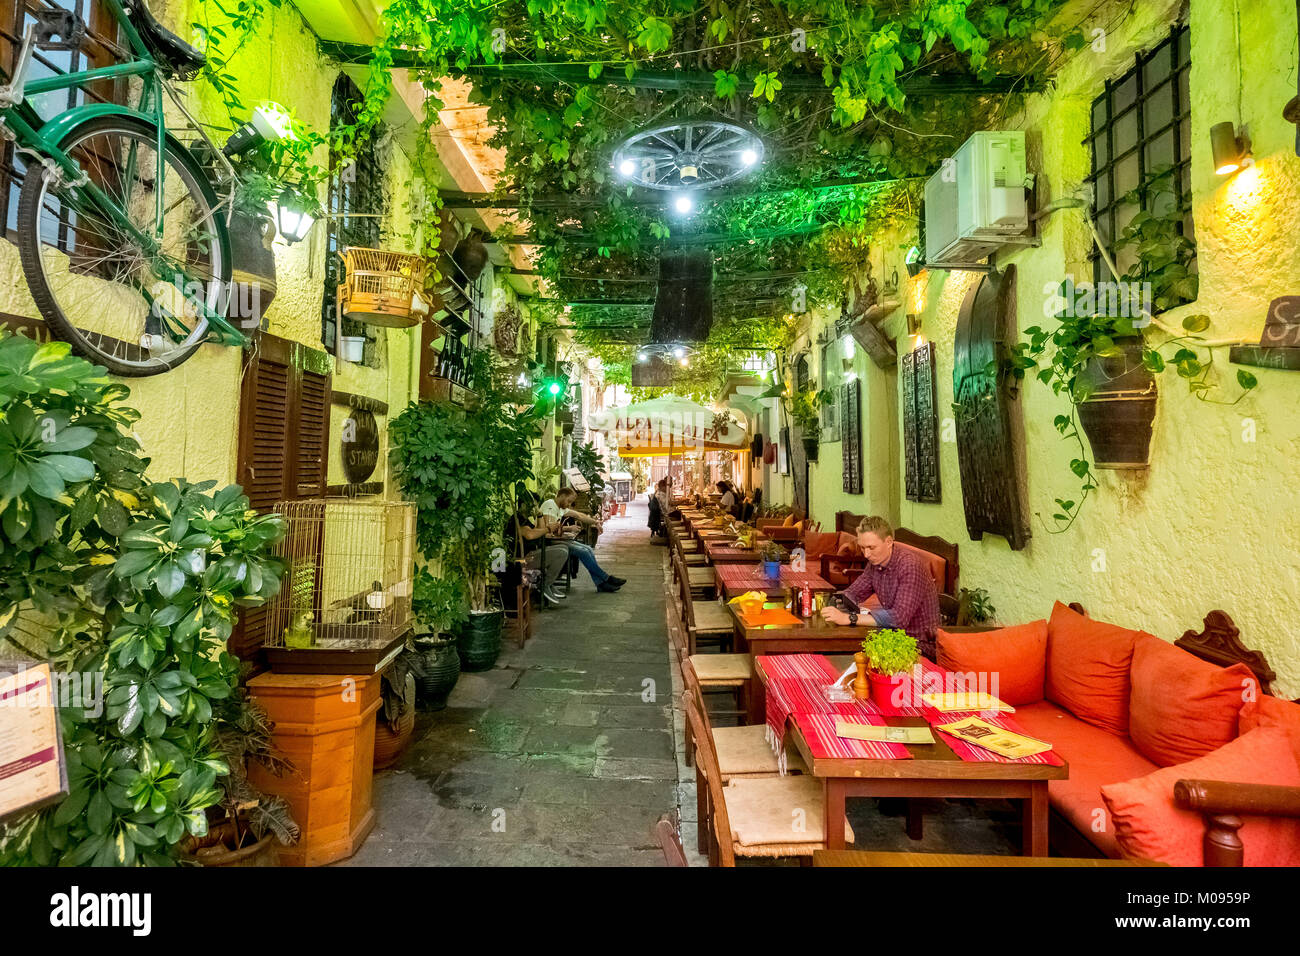 Restaurant, tavern in an alley in the old town of Rethymno, vine leaves and red sofas, Europe, Crete, Greece, Rethymno, Stock Photo